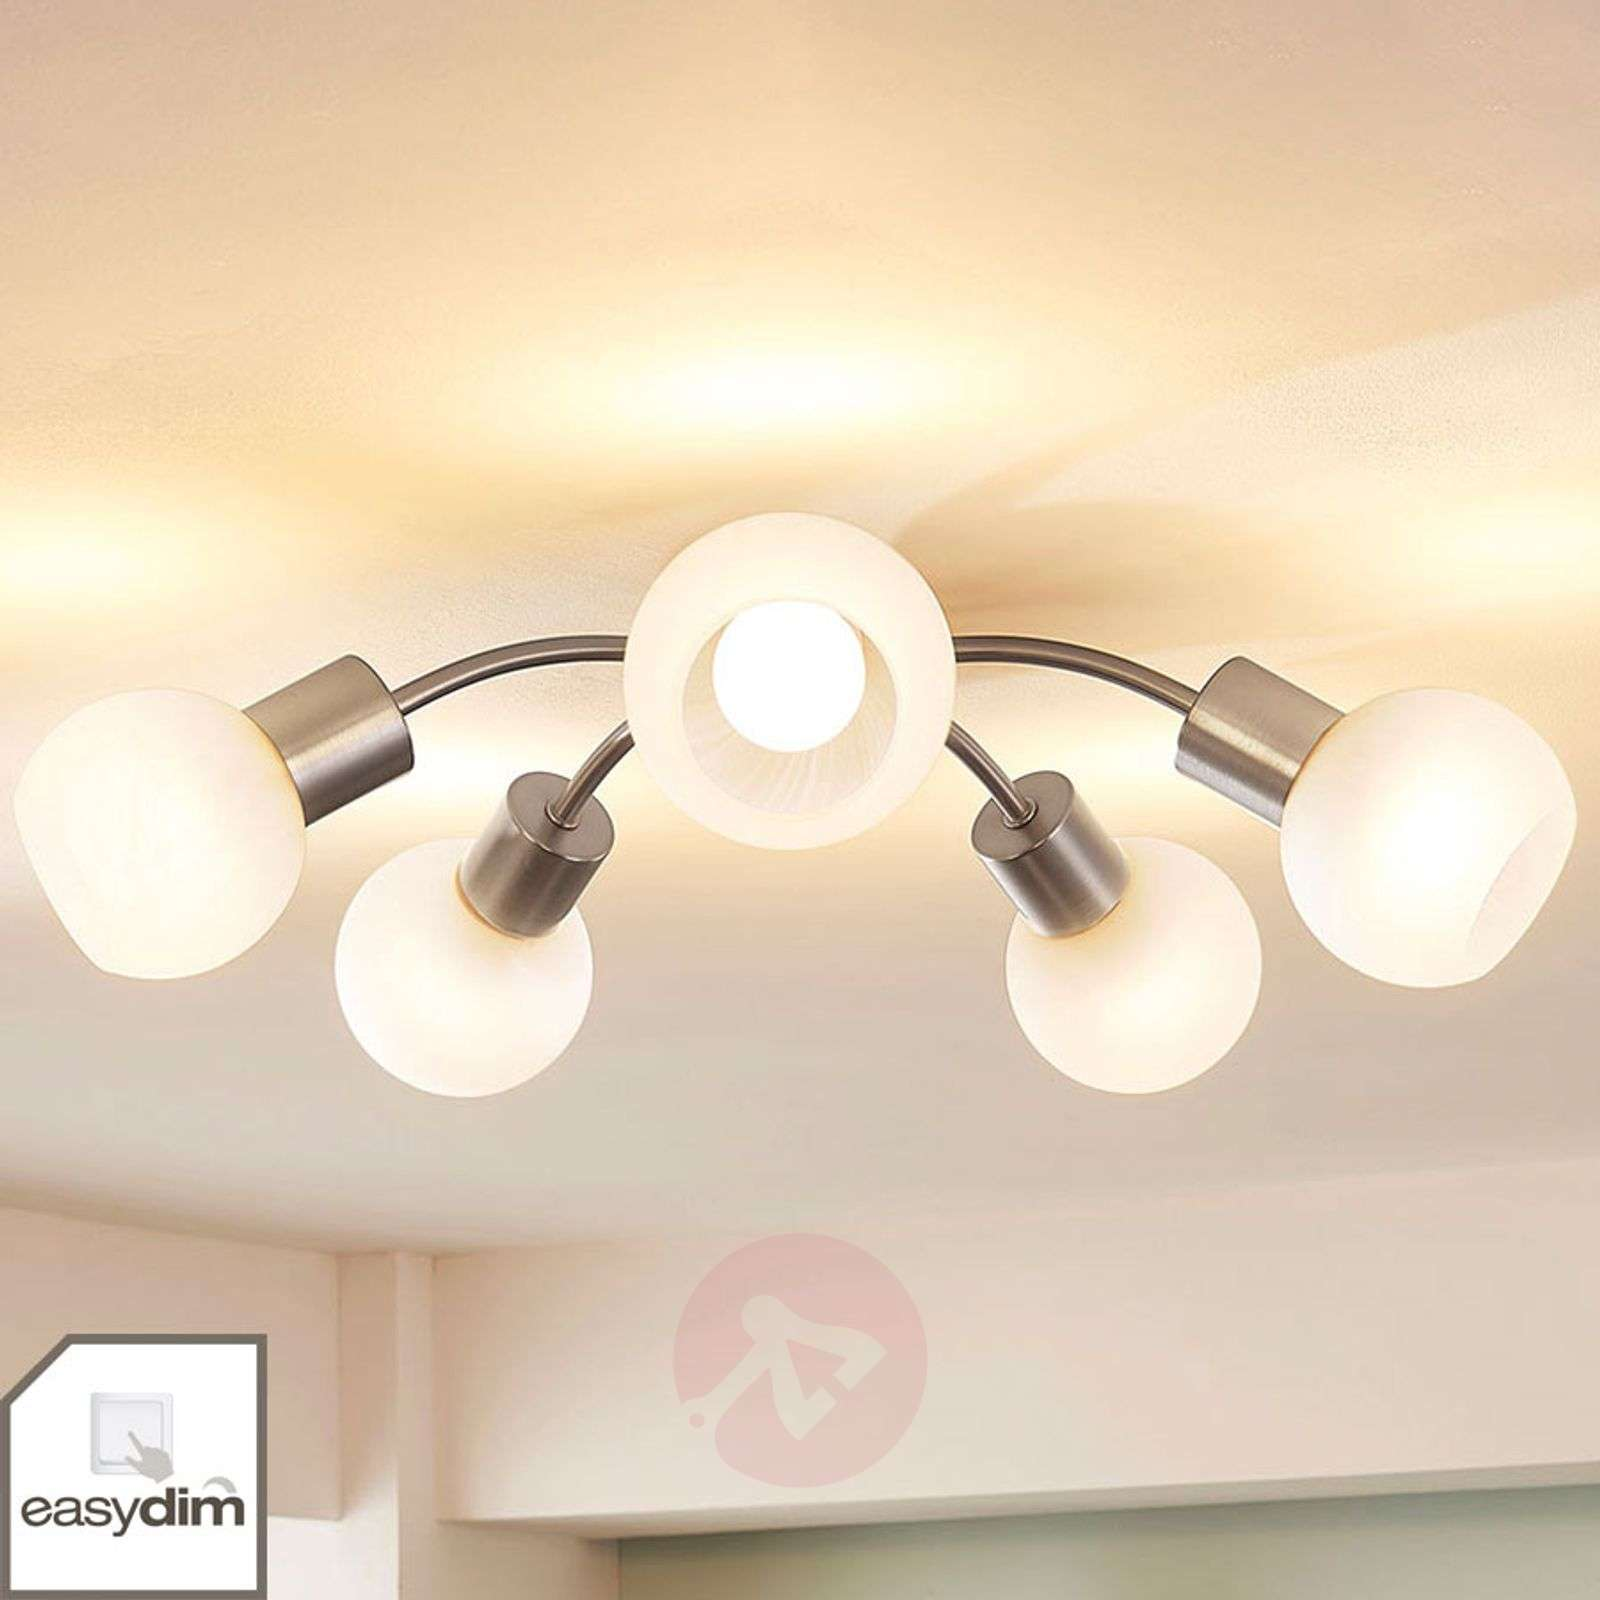 Ray-shaped LED ceiling light Tanos, Easydim-9621569-011